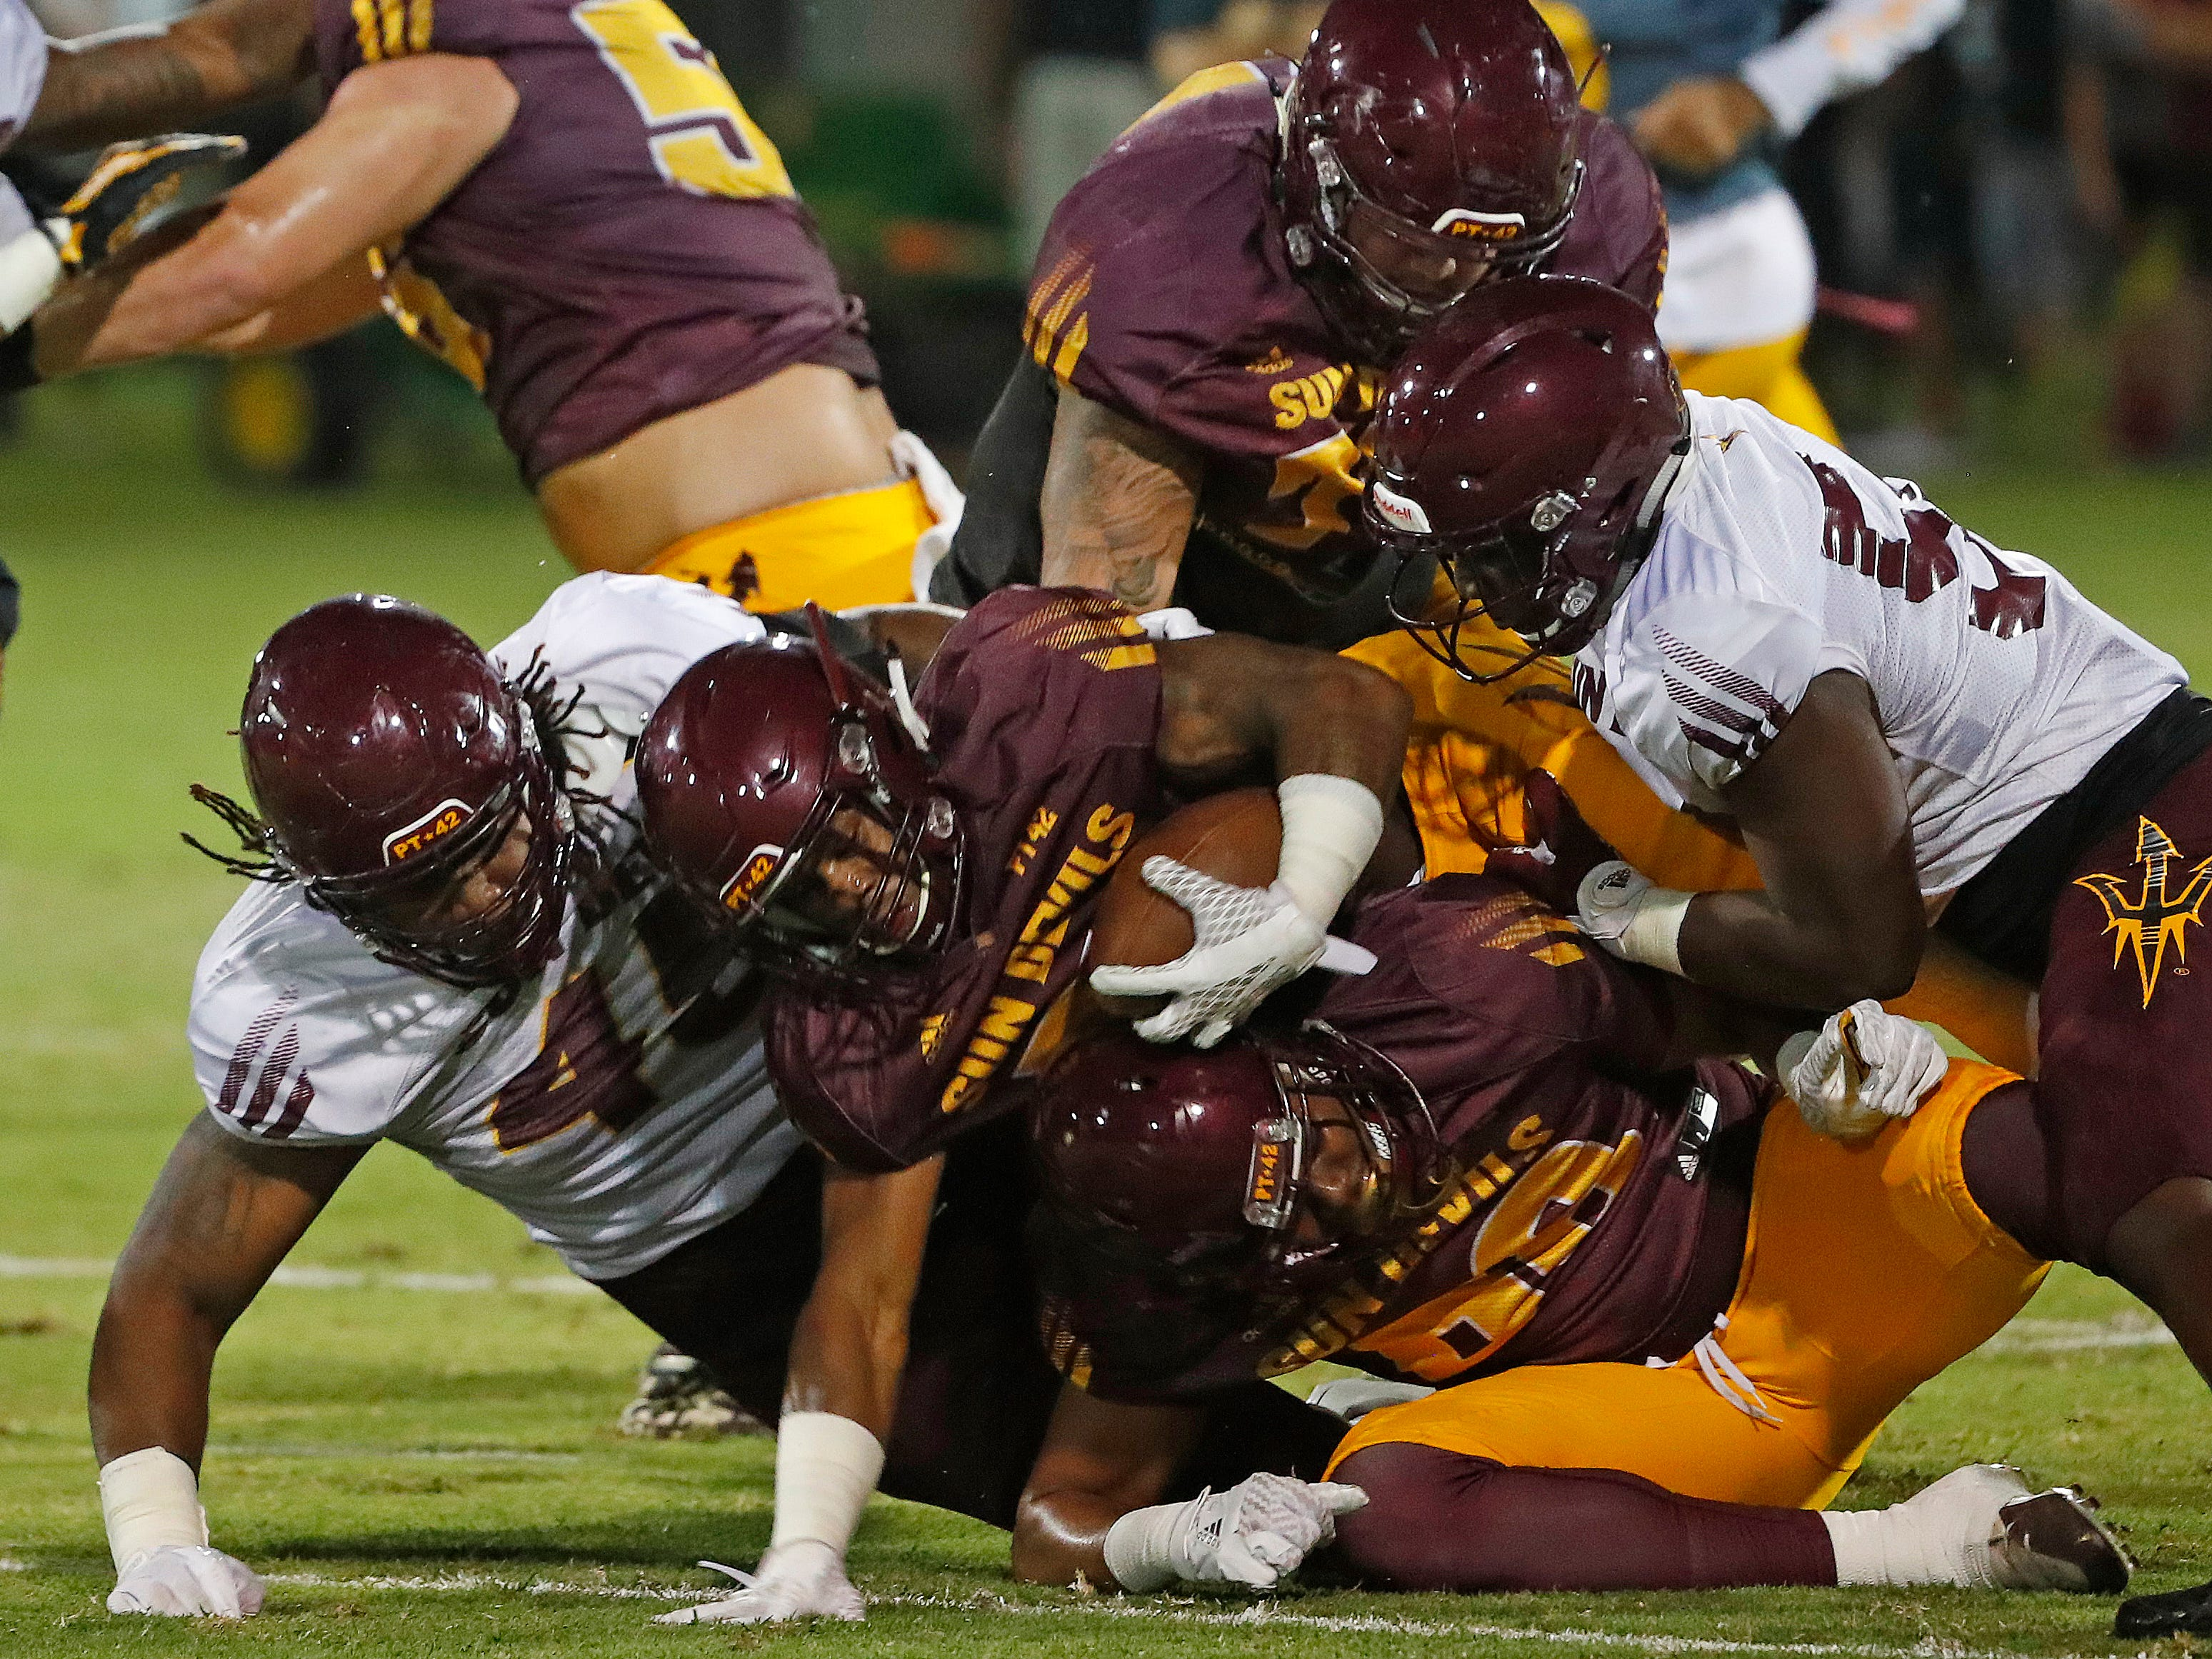 ASU's George Lea (45) tackles Isaiah Floyd (31) during the ASU scrimmage at Kajikawa Practice Fields in Tempe, Ariz. on Aug. 11, 2018.